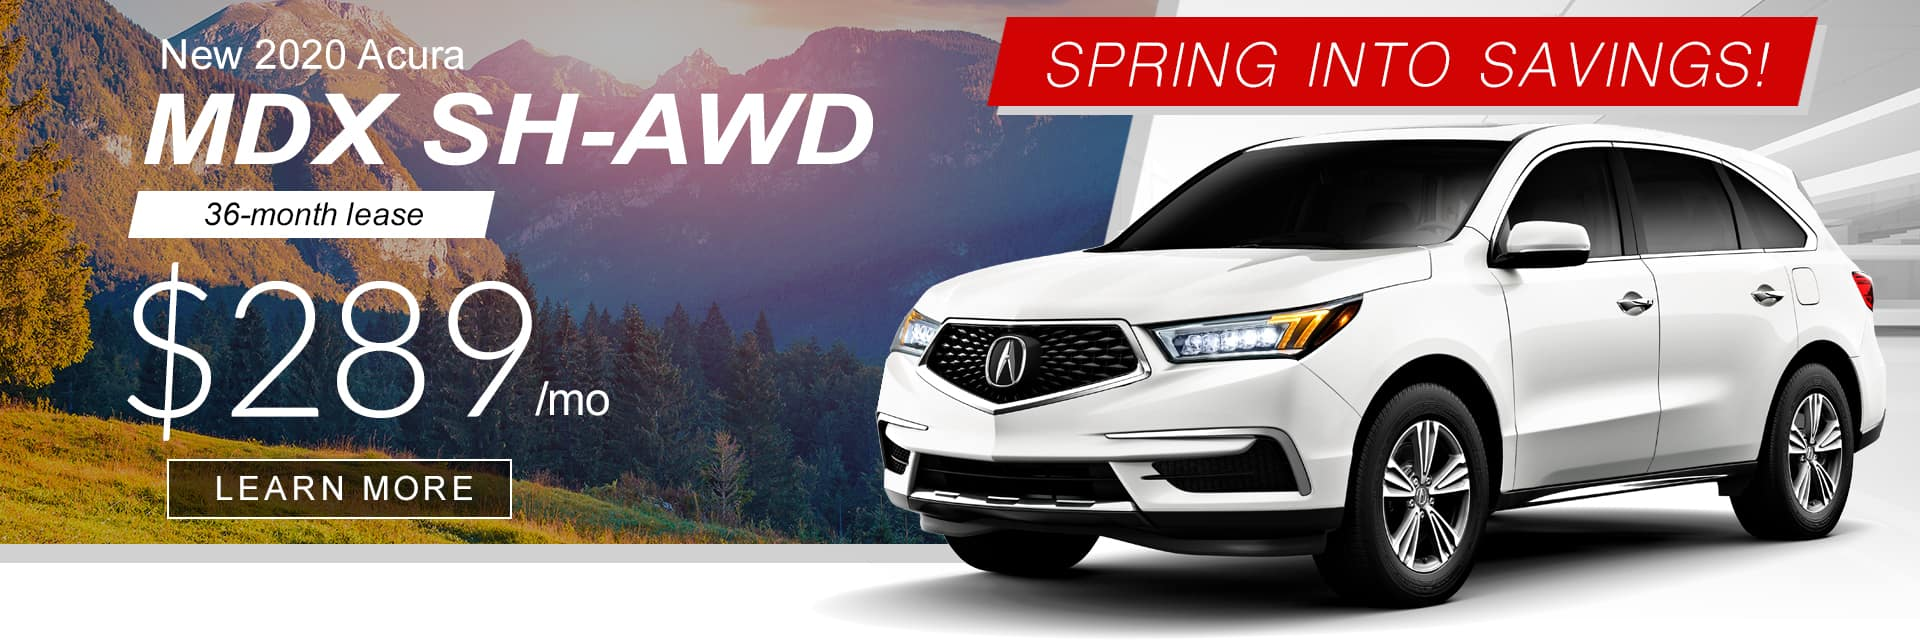 2020 MDX SPring into Savings Banner